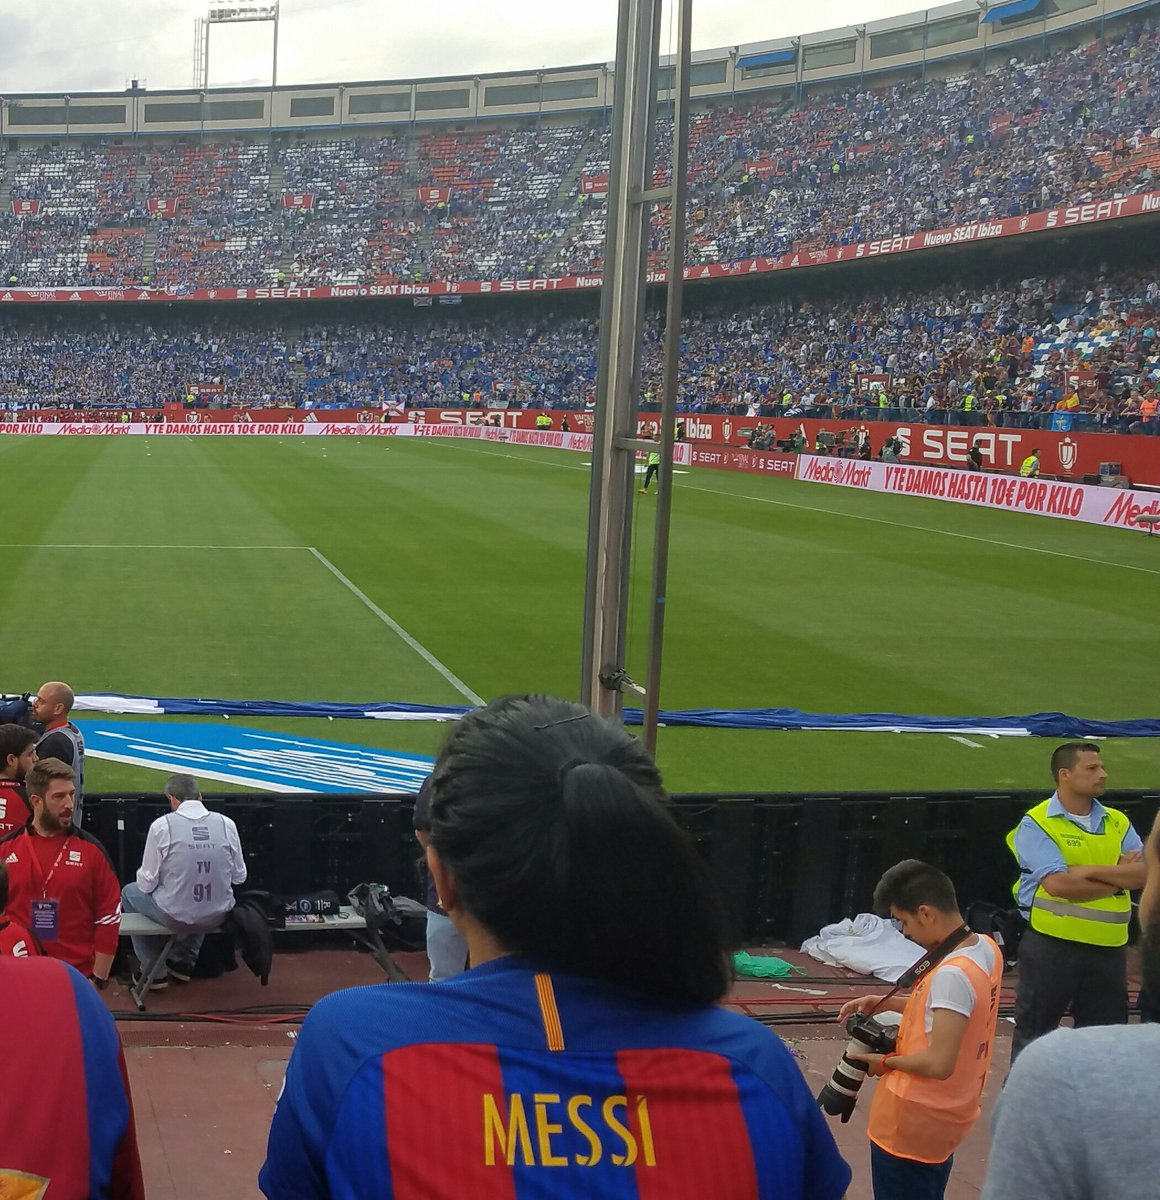 Watching #CopaDelReyFinal live at #calderon right behind the goal in row 1 is....#dreamsdocometruefast <br>http://pic.twitter.com/cBEejlx6a0